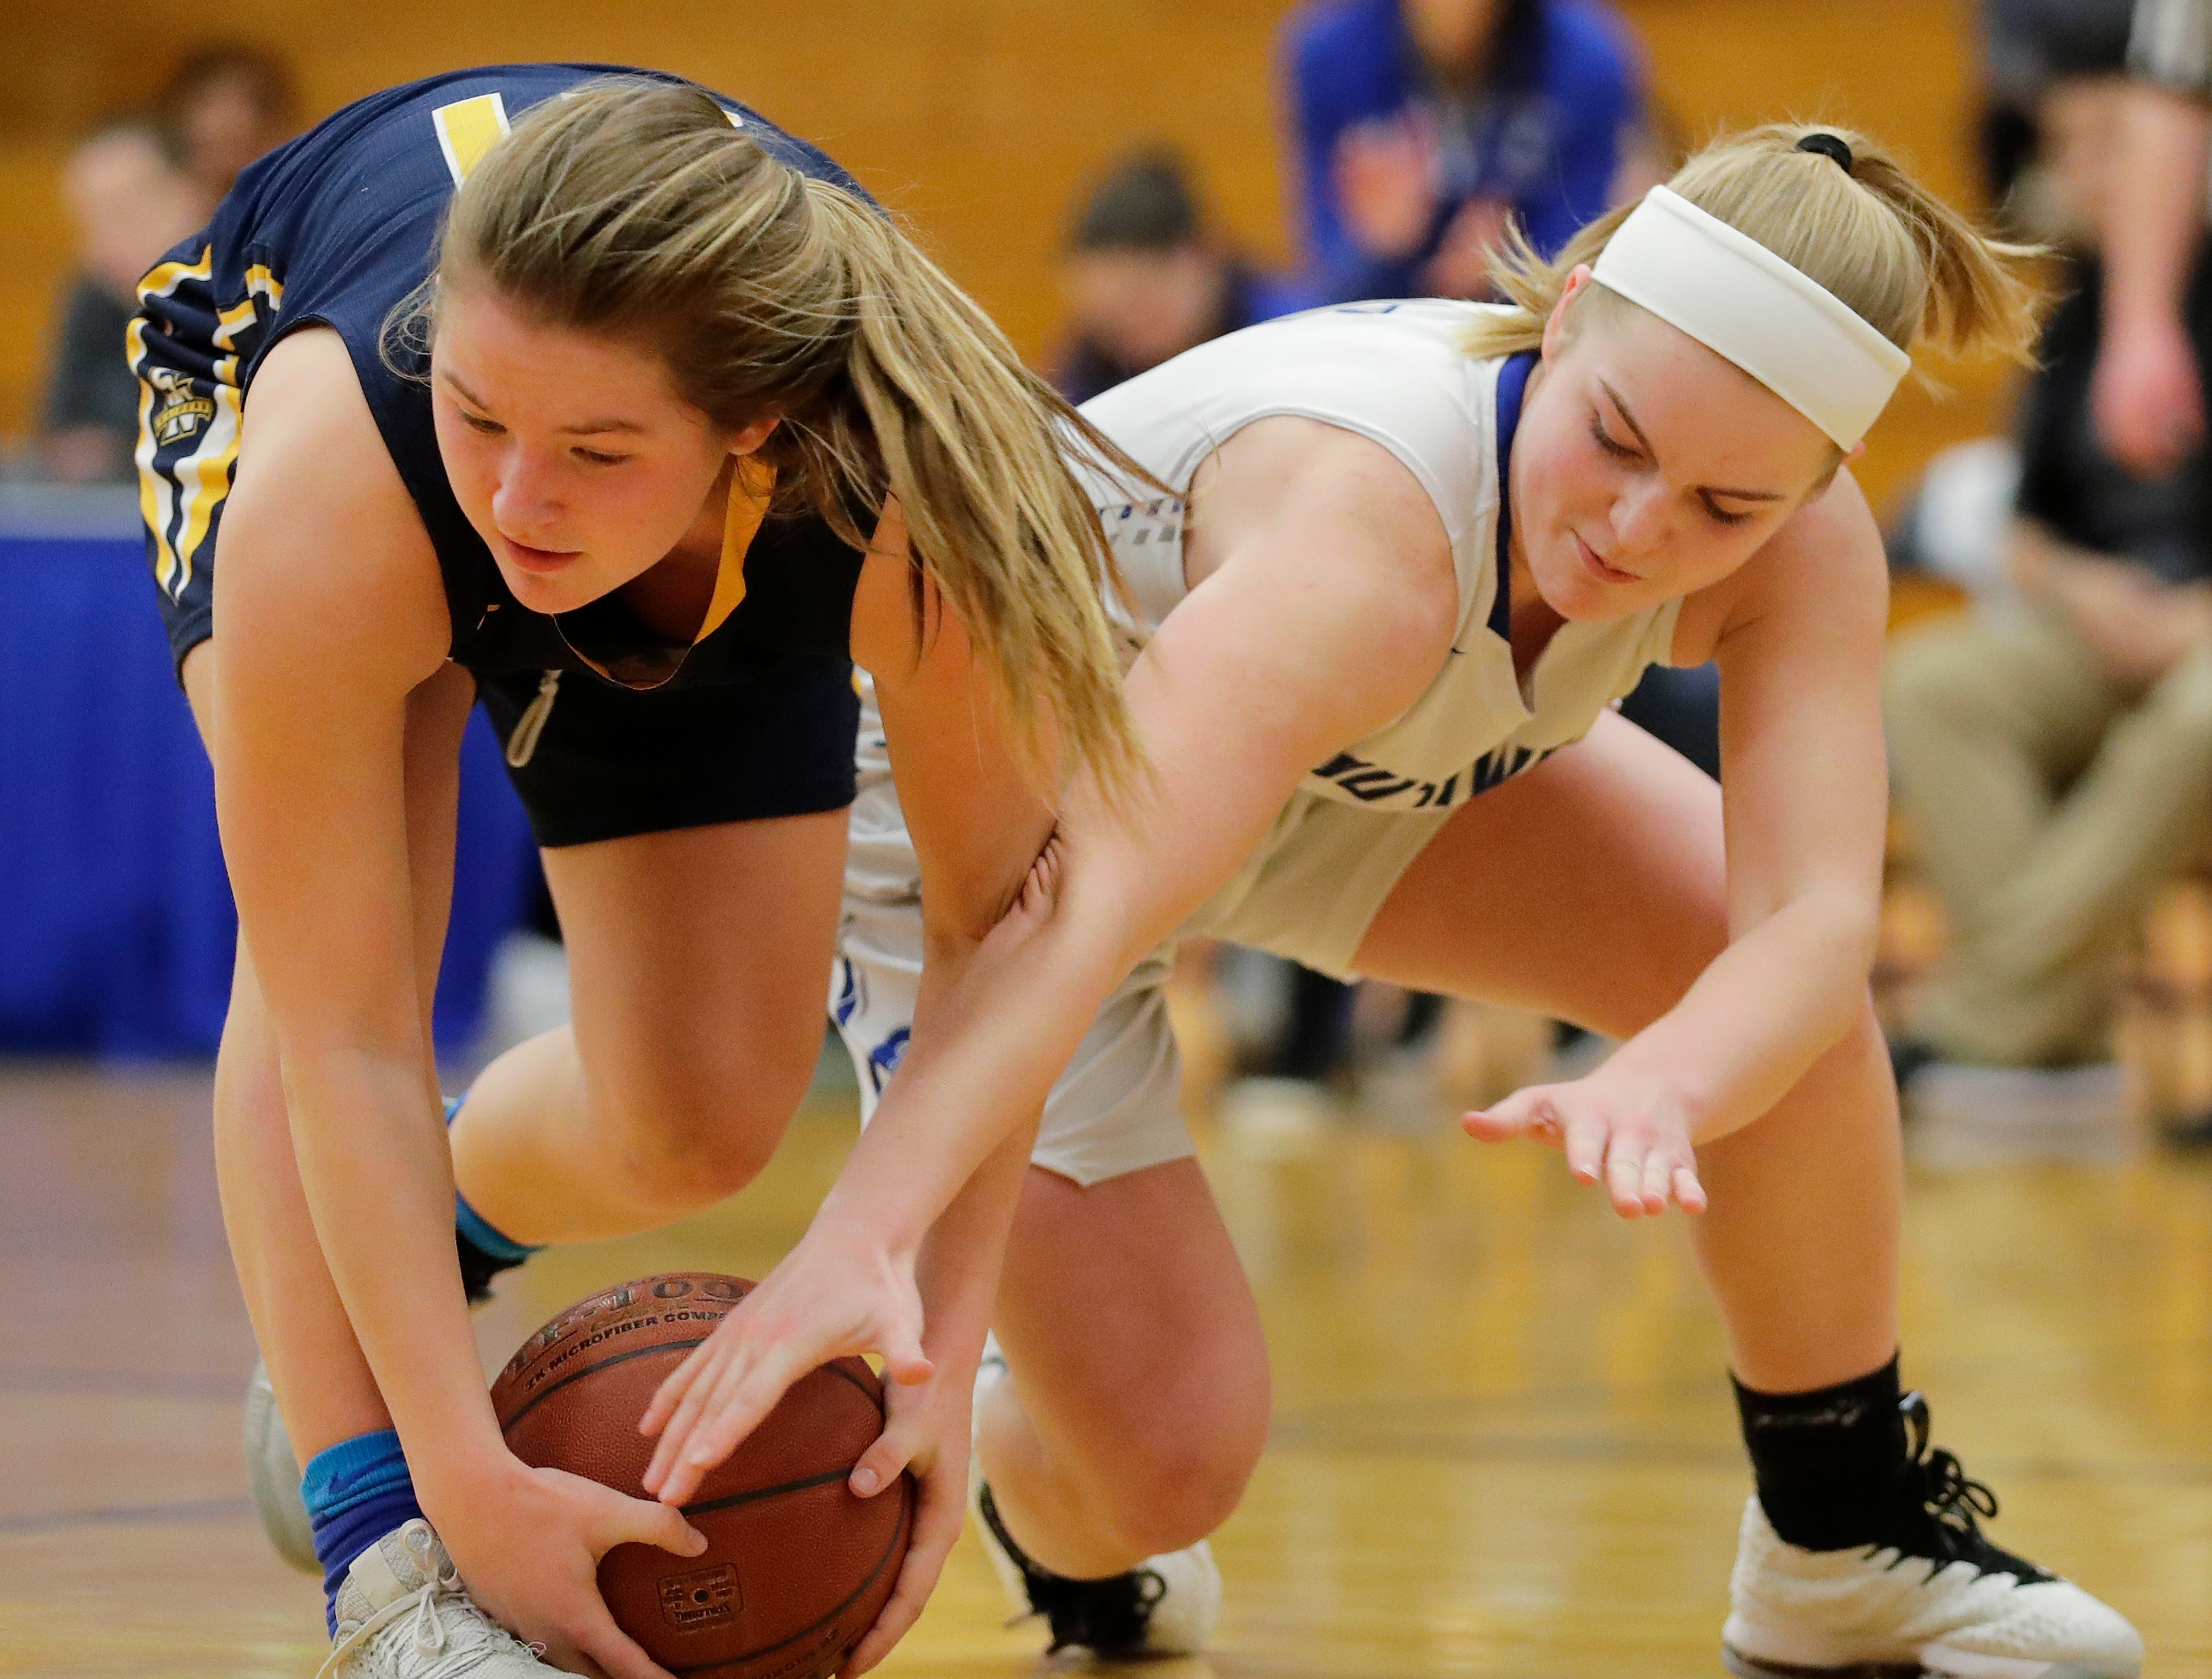 Green Bay Southwest's Kiara Thomas (5) and Sheboygan North's Emma Belmore (21) vie for a loose ball in a girls basketball game at Southwest High School on Tuesday, February 5, 2019 in Green Bay, Wis.